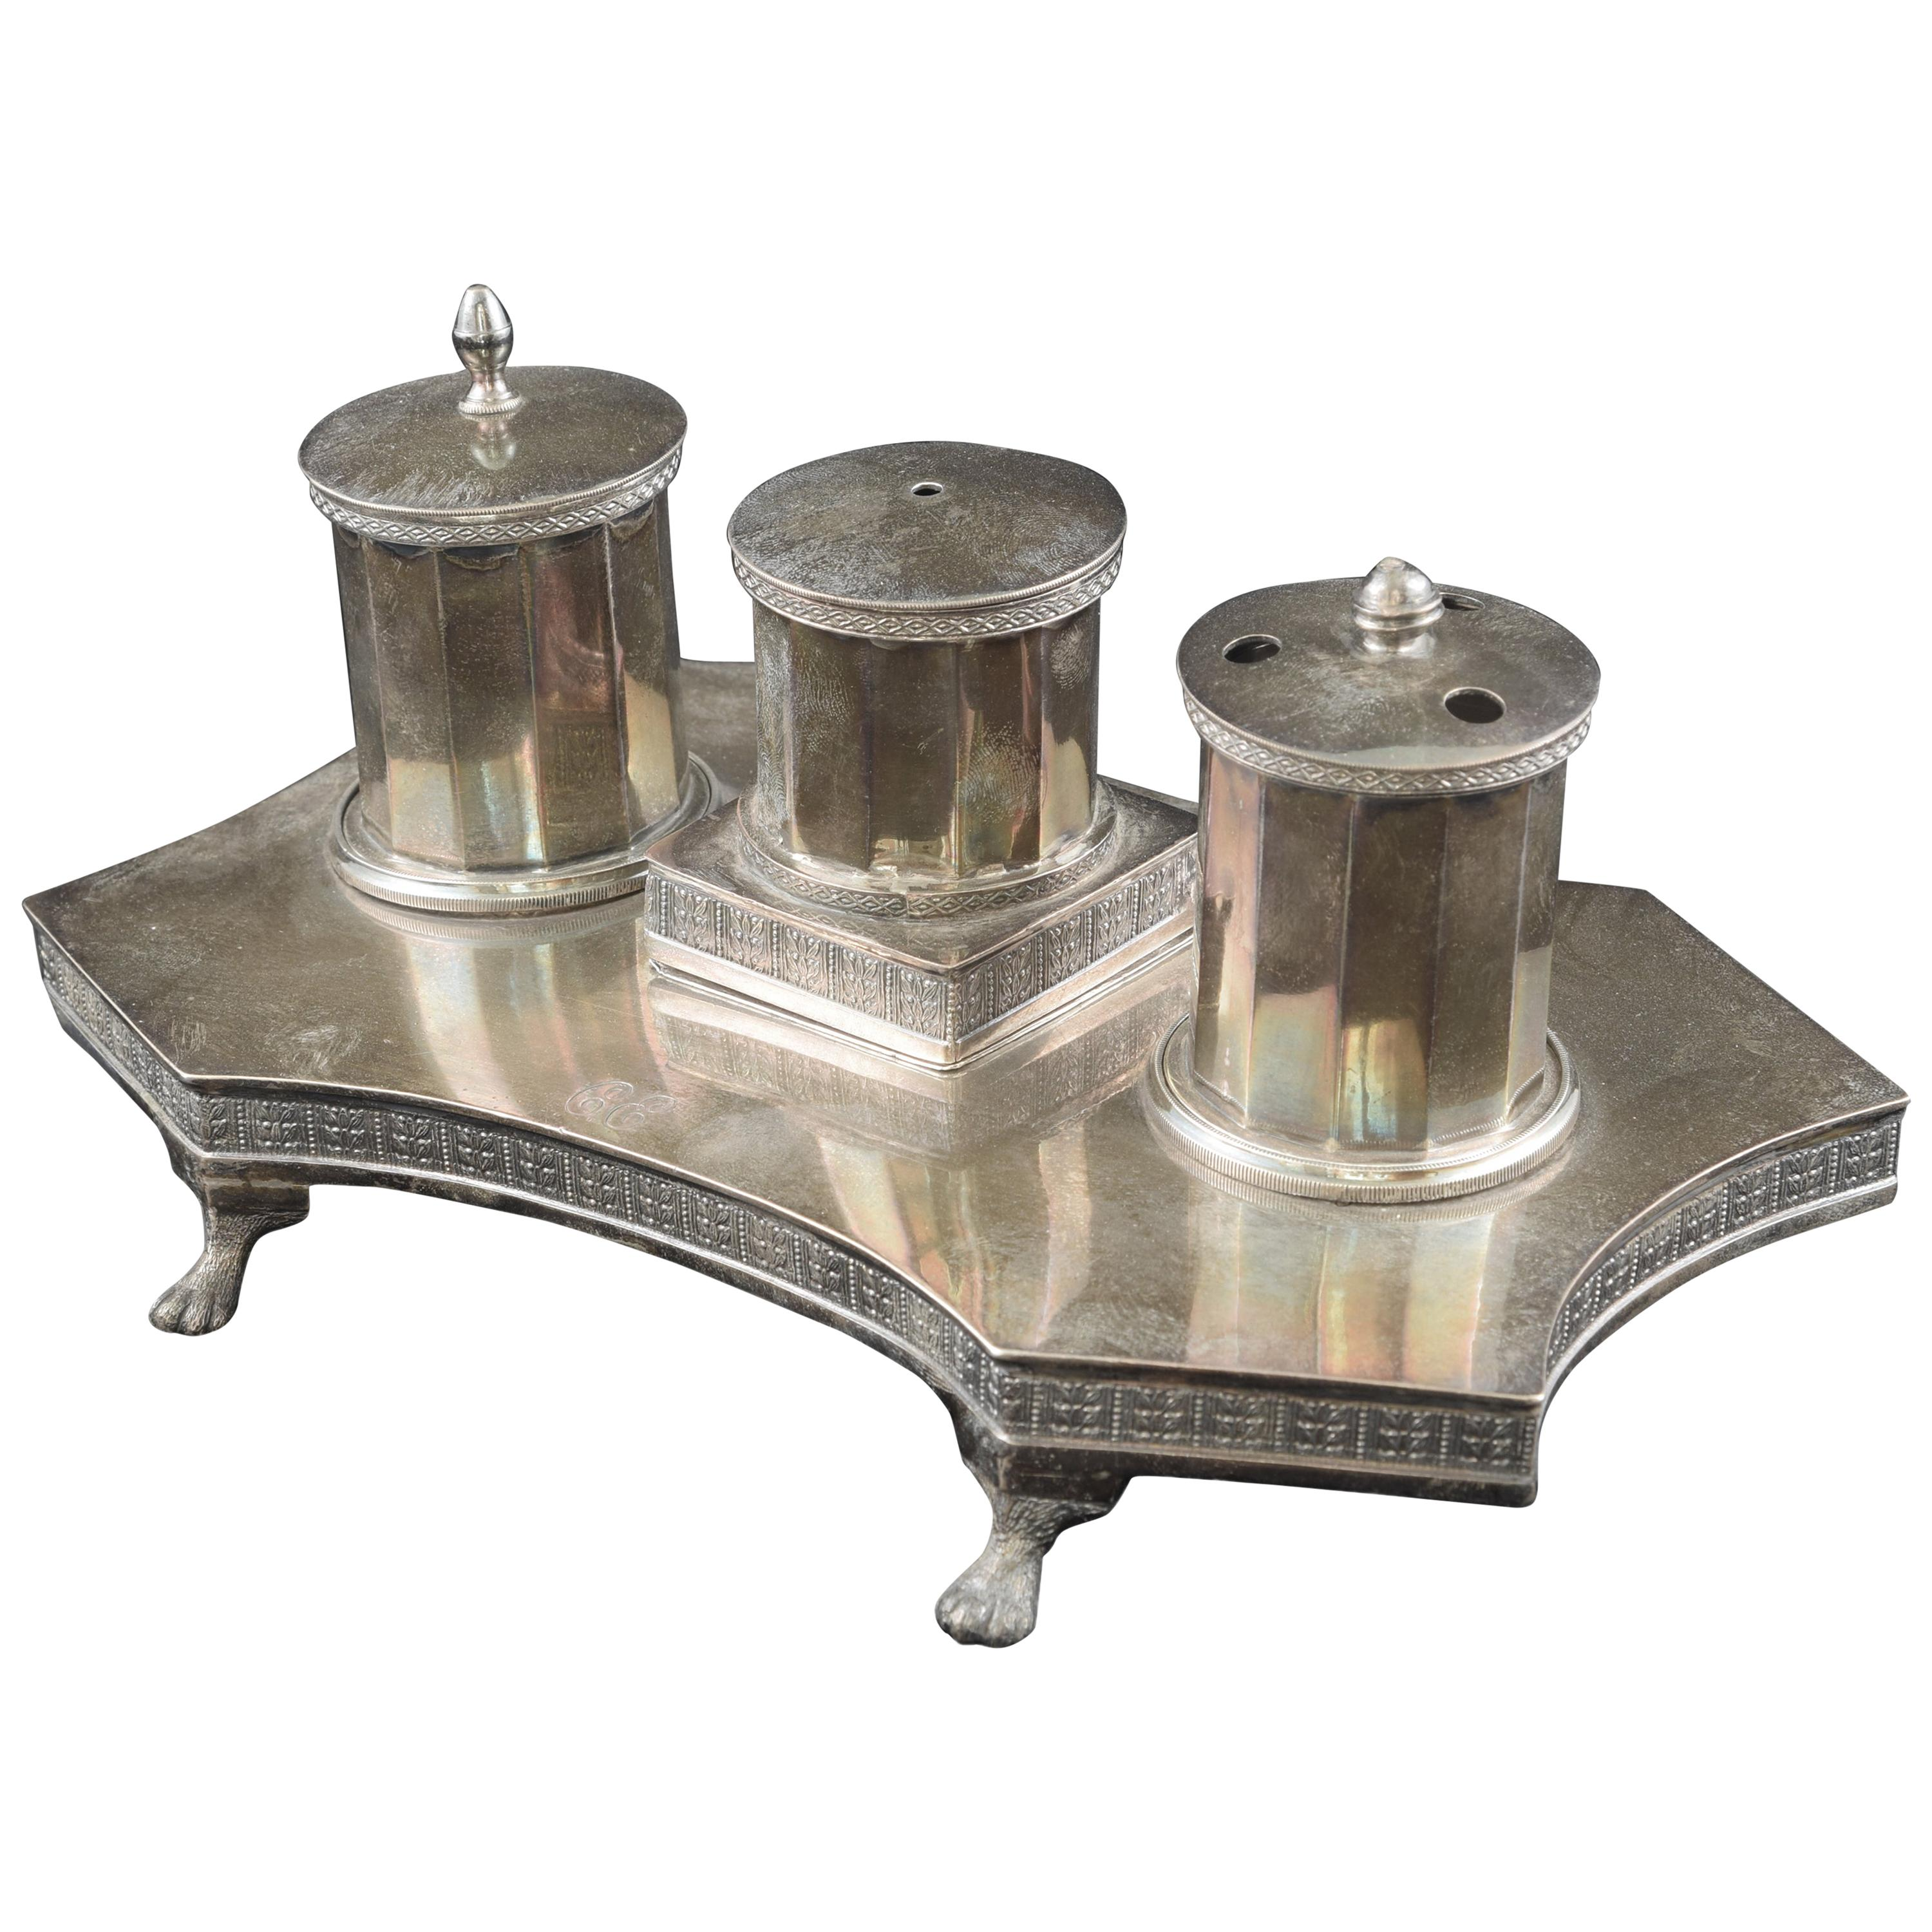 Silver Writing Set, Madrid, Spain, 1819 and 1841, with Hallmarks